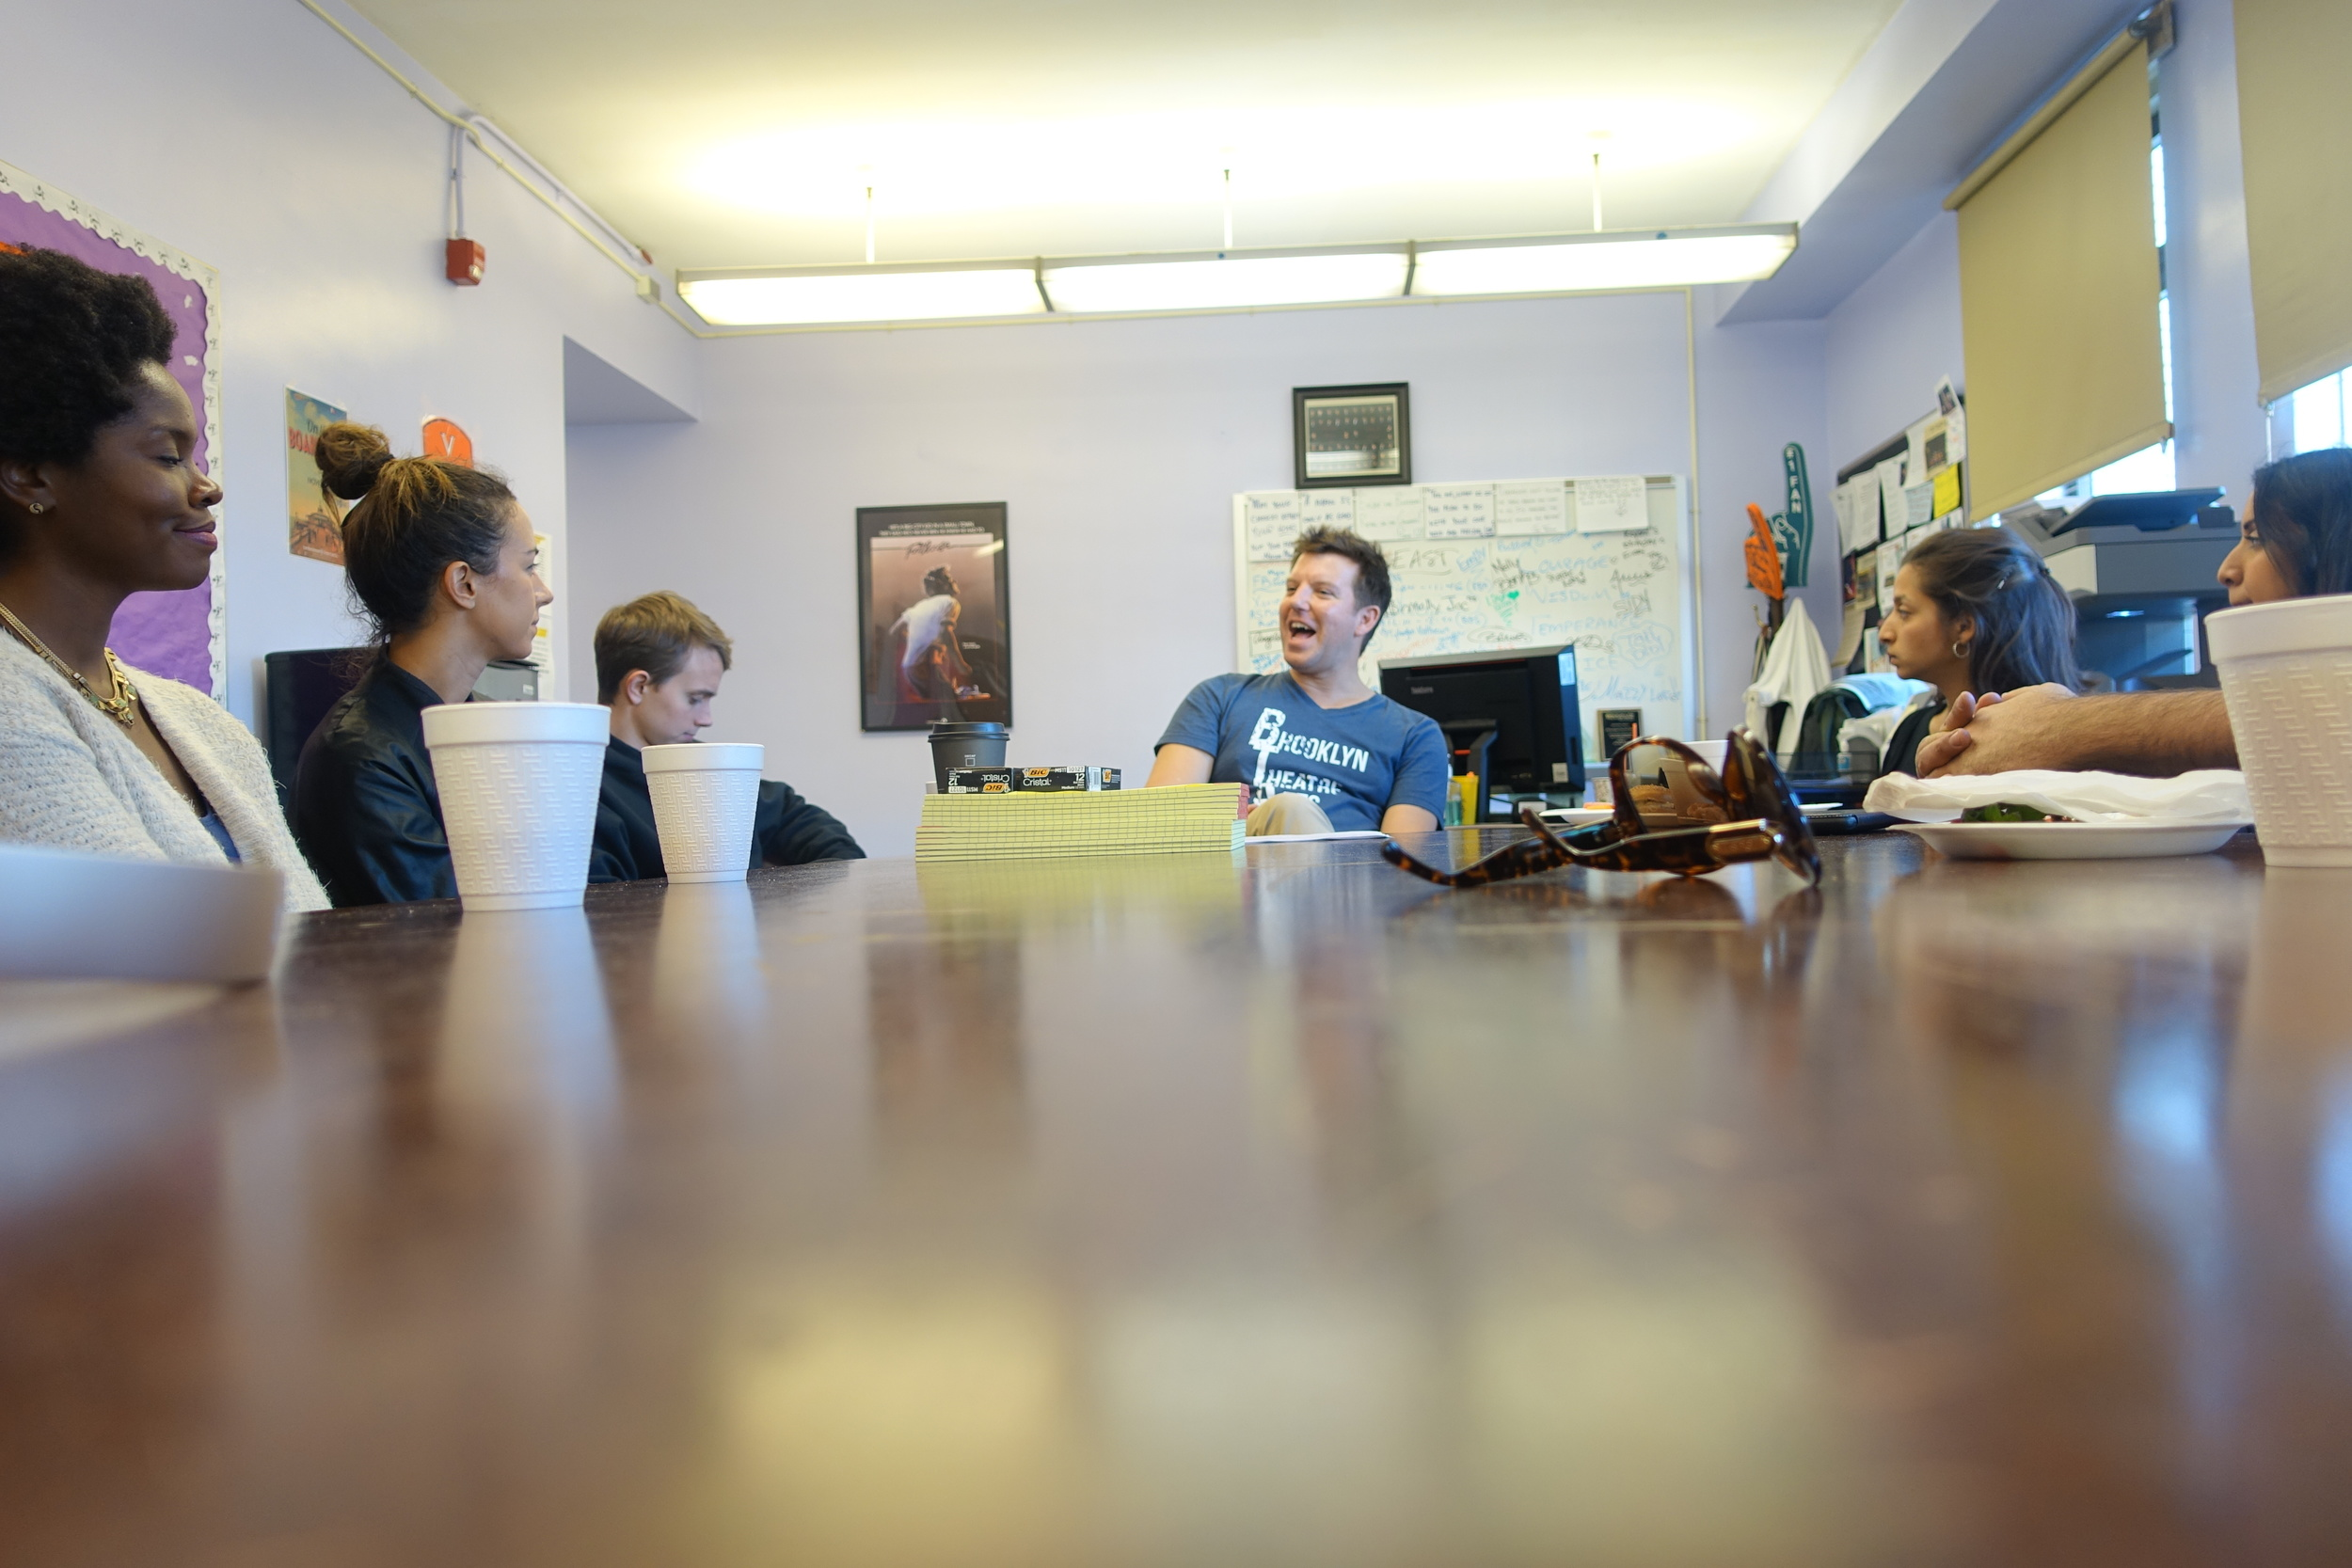 Back in the Principals office, we engaged with David in a discussion on the goals of the school. While the students we had met met exuded self-confidence, Mr. Ward made clear engaging and inspiring students is still a challenge.